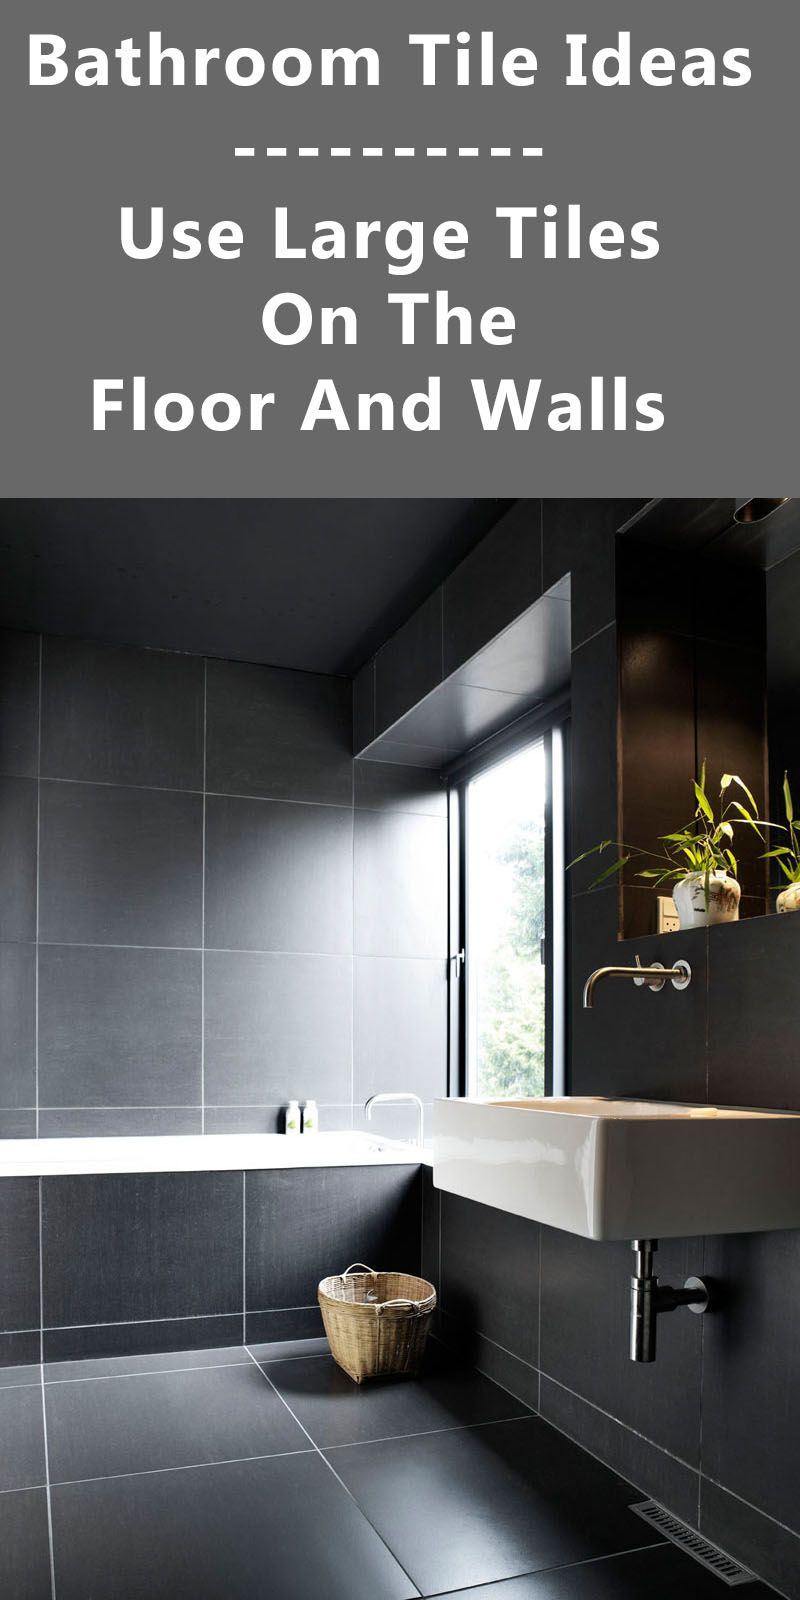 Bathroom Tile Idea Use Large Tiles On The Floor And Walls 18 Pictures Bathroom Design Luxury Grey Bathroom Floor Dark Gray Bathroom